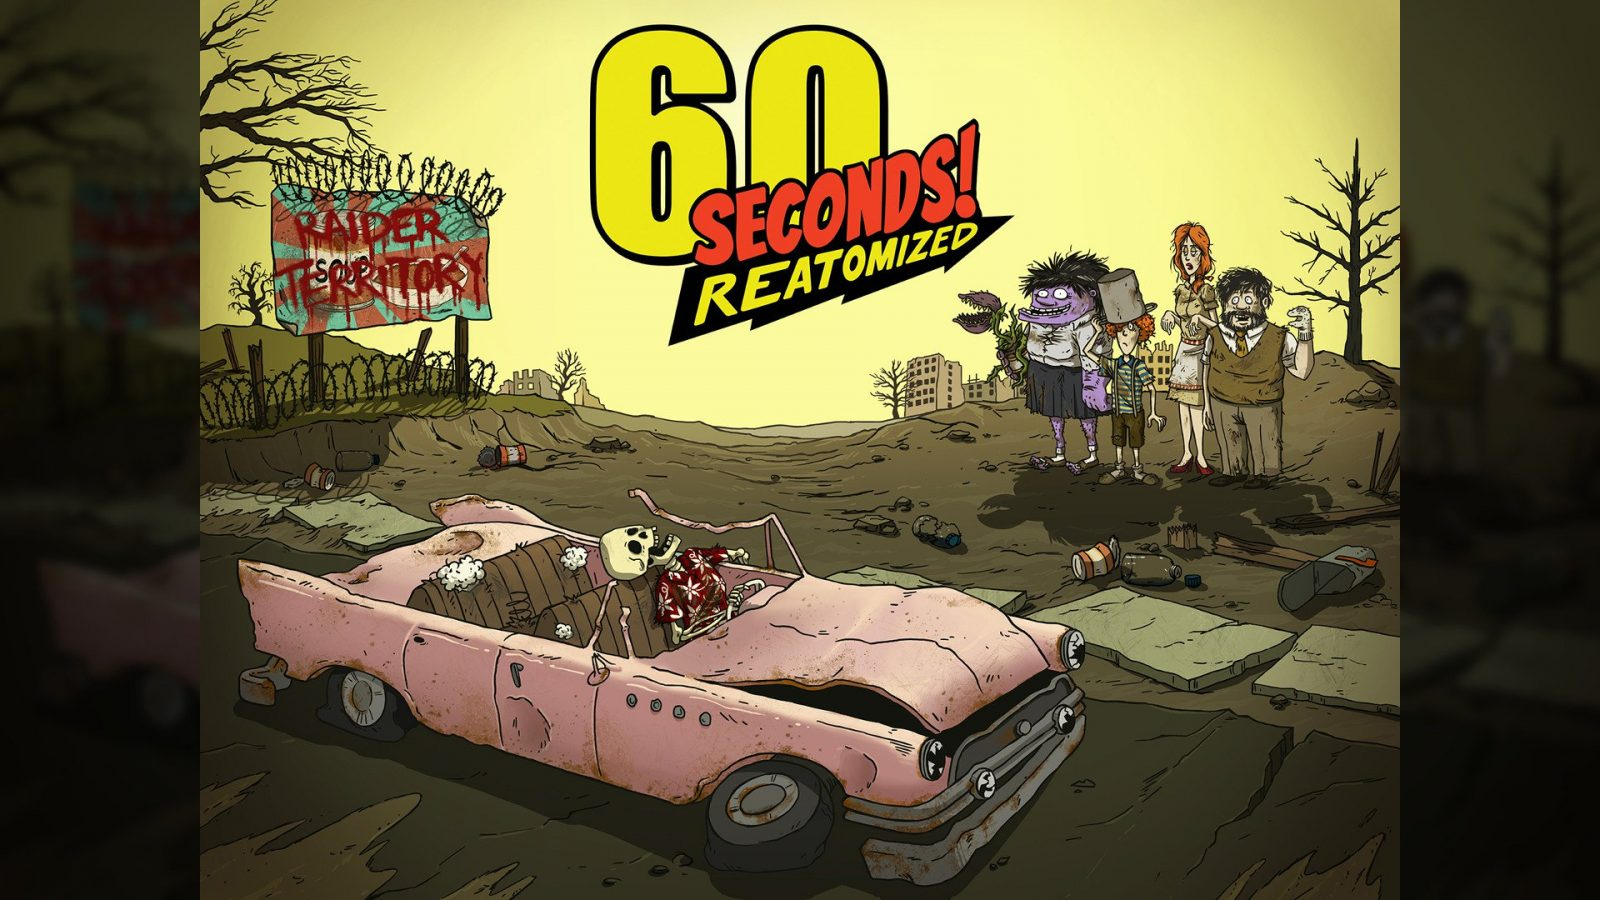 60 Seconds! Remaster '60 Seconds! Reatomized Blasts Onto Steam July 2019